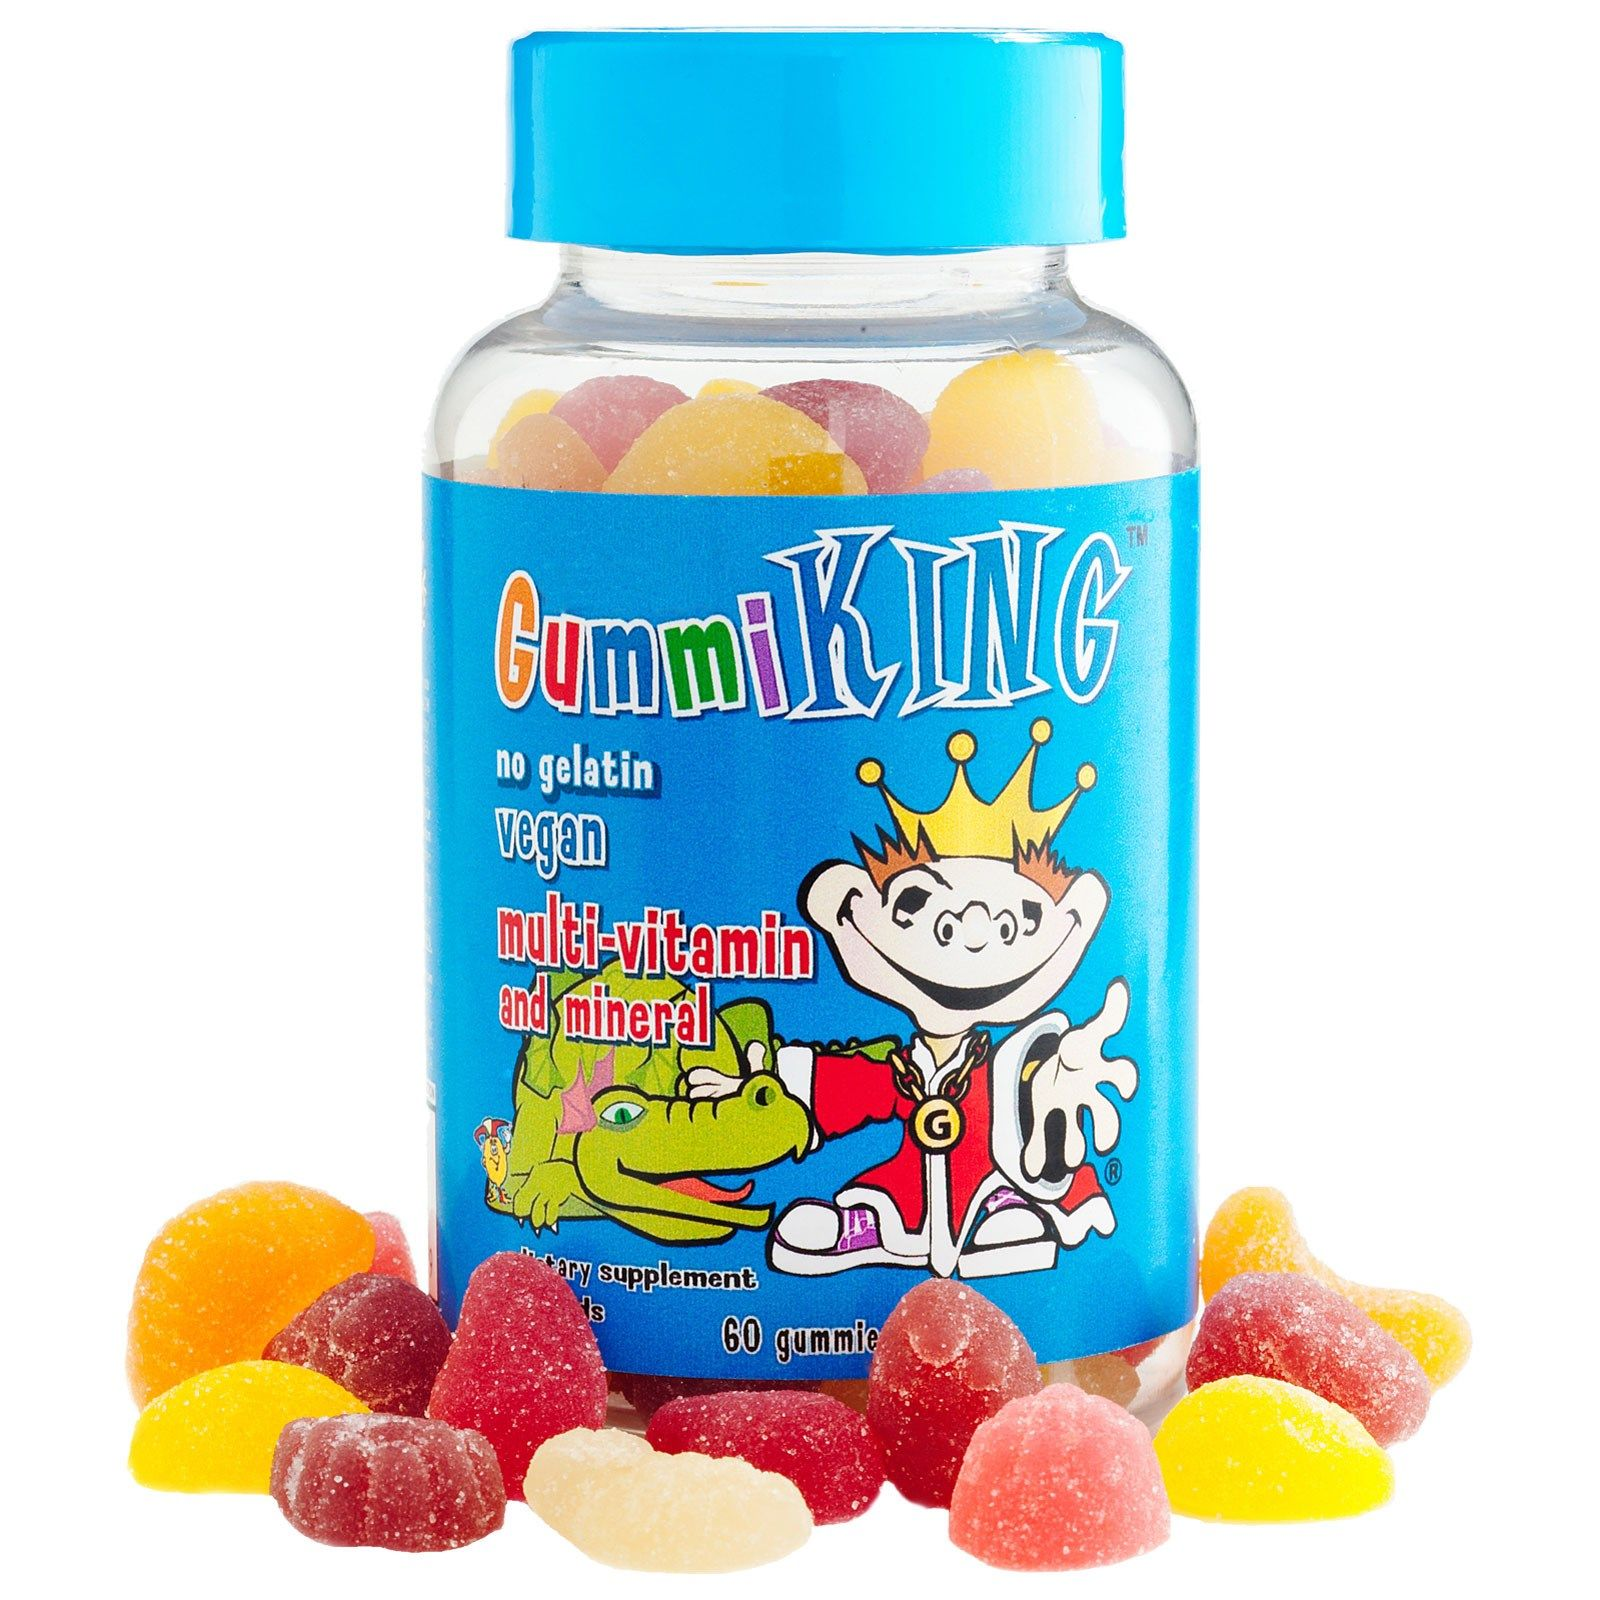 Centrum Kids Chewable Multivitamin Read More At The Image Link Blackmores Bio C 500mg 125 Tablet Made In Australia